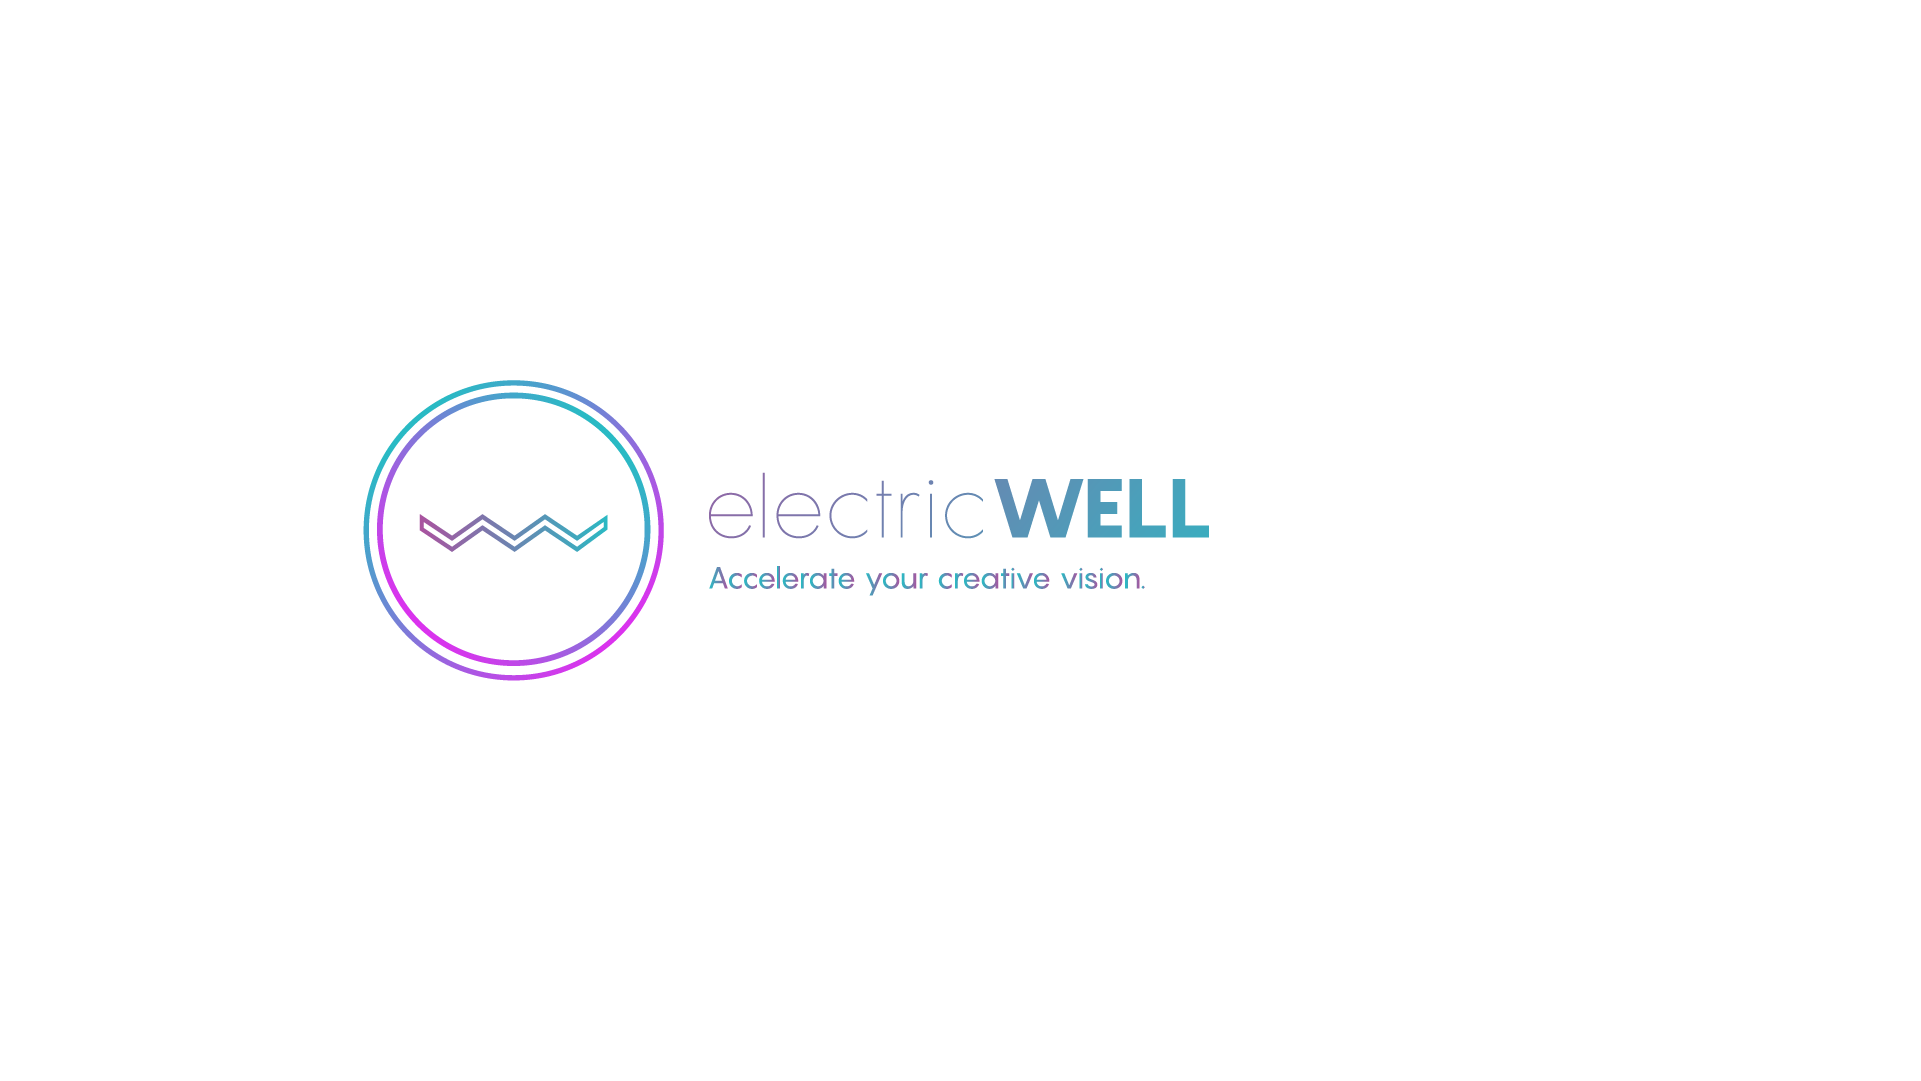 electric WELL (new look)